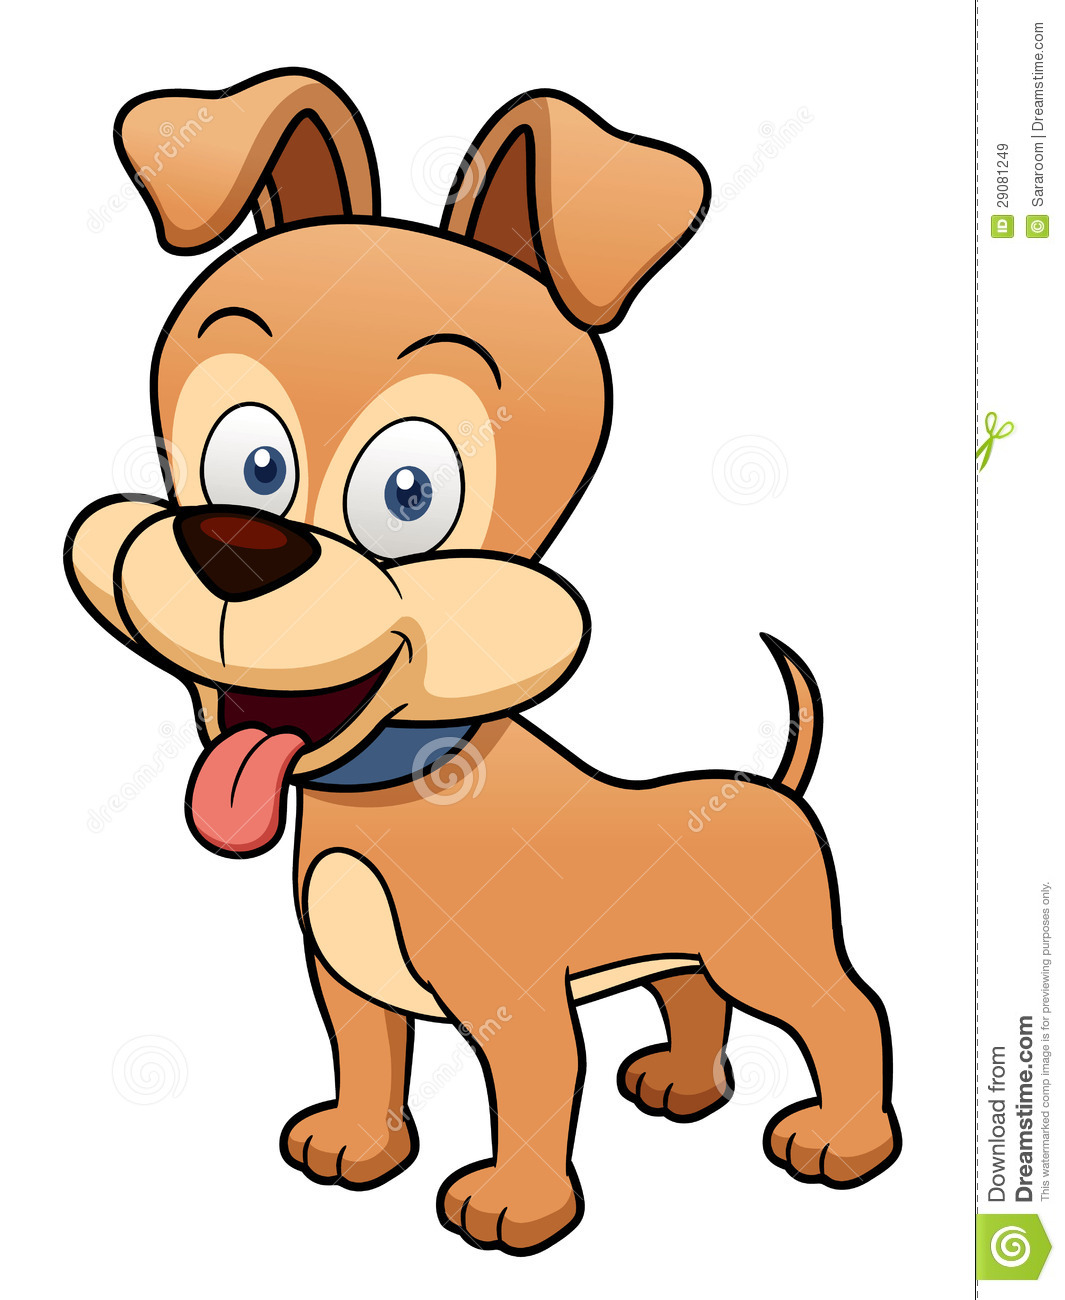 Cartoon Dog Royalty Free Stock Images - Image: 29081249